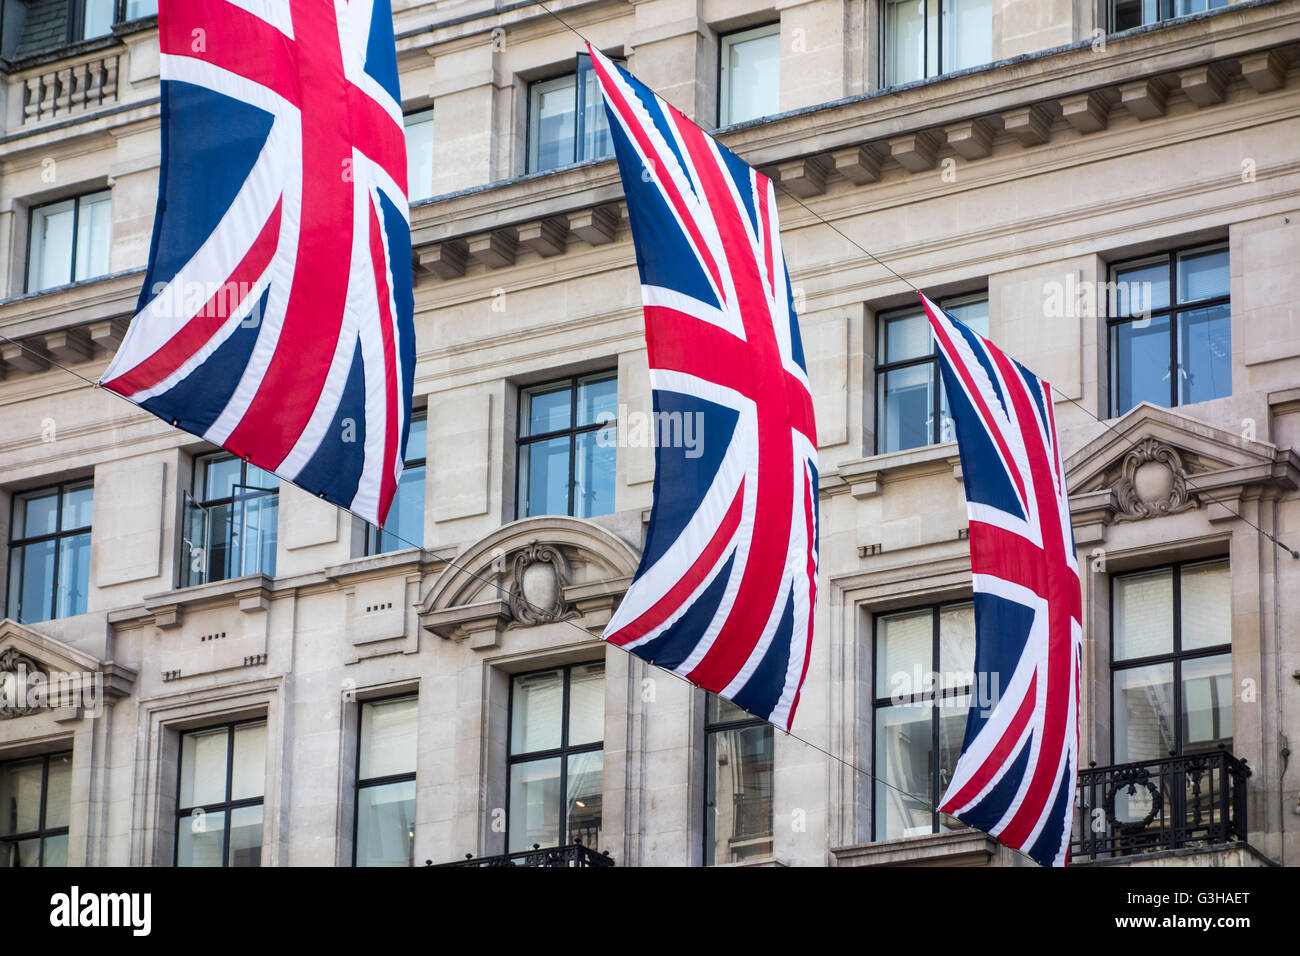 Union Flags / Union Jack Flags hanging over Regent Street, London for the Queen's Birthday - Stock Image